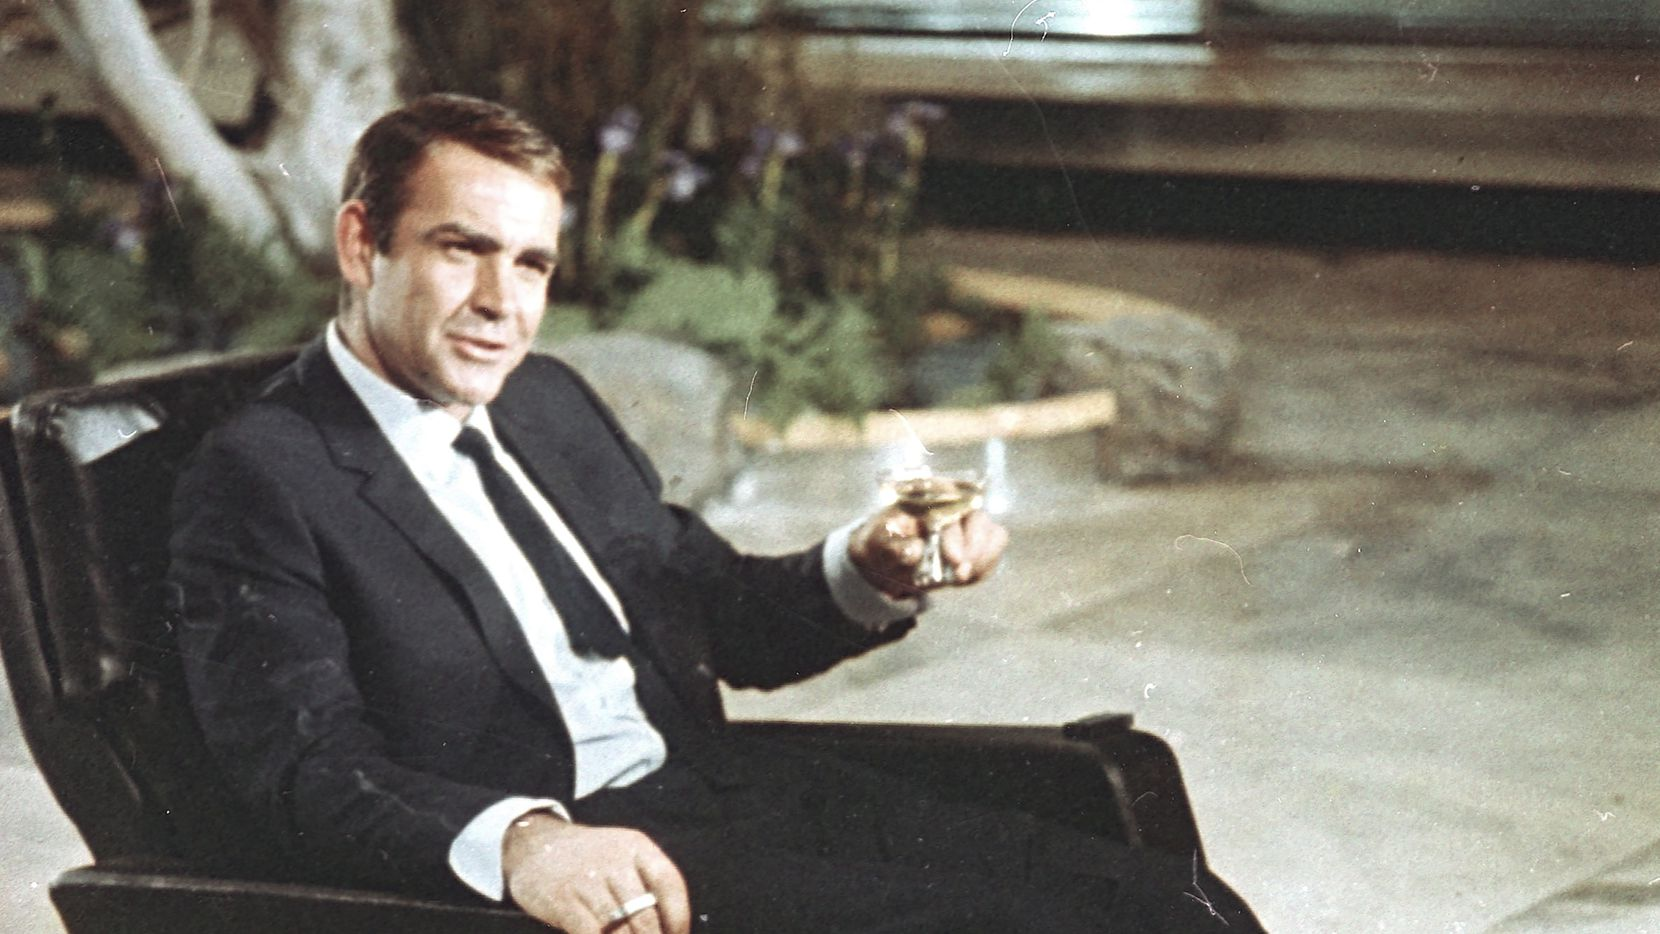 """Actor Sean Connery in 1966 is shown during filming the James Bond movie """"You Only Live Twice,"""" on location in Tokyo, Japan."""